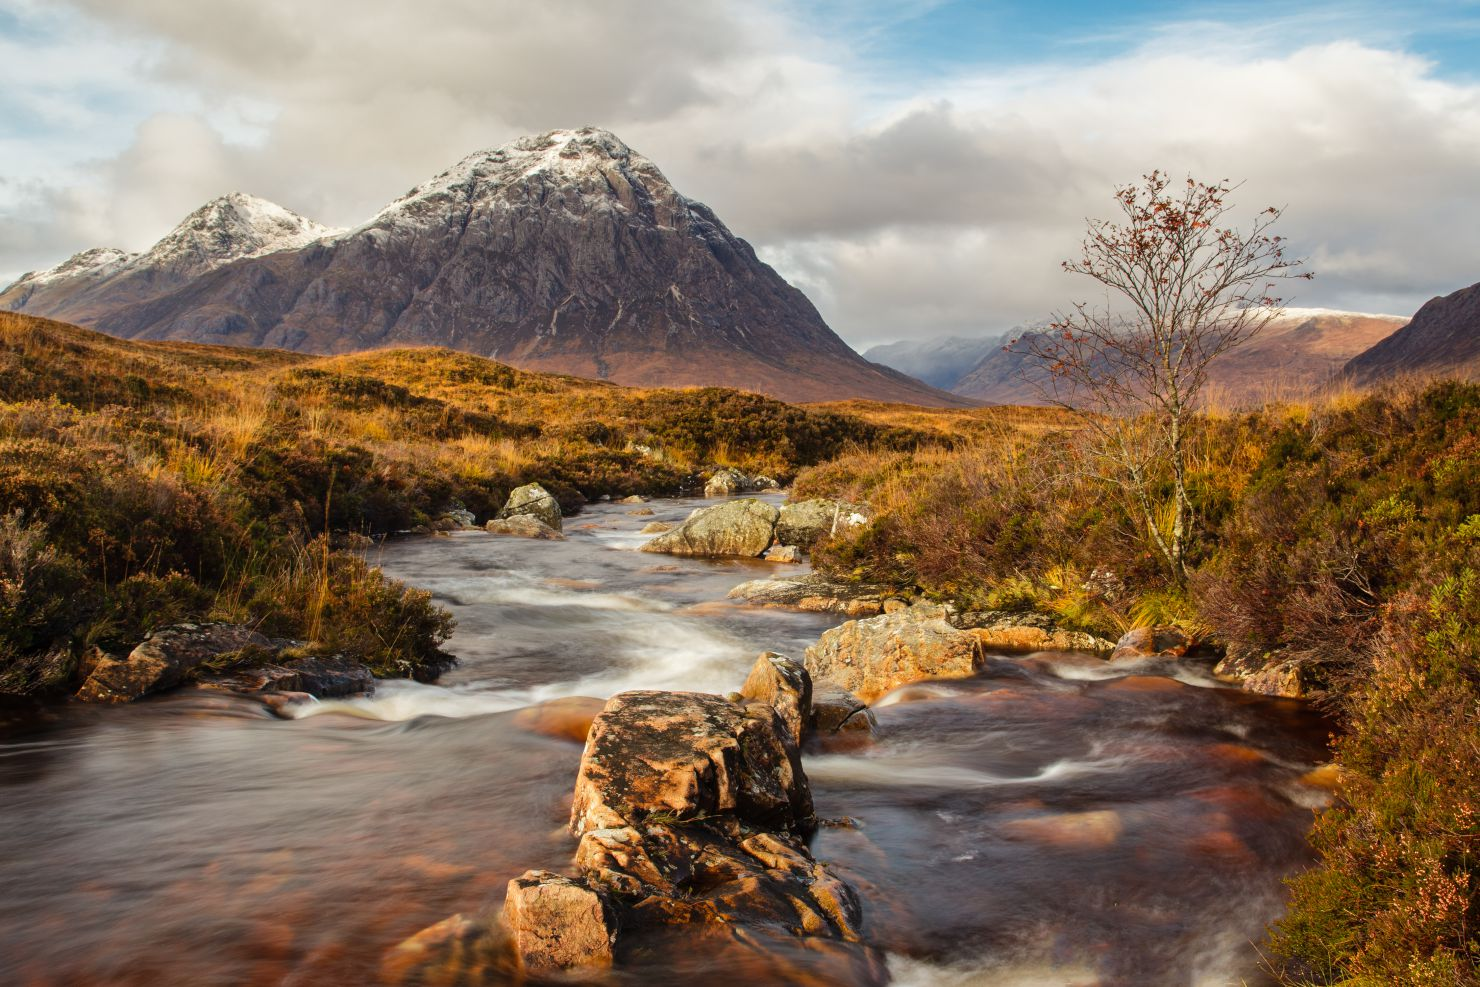 Mountain and river in Scotland